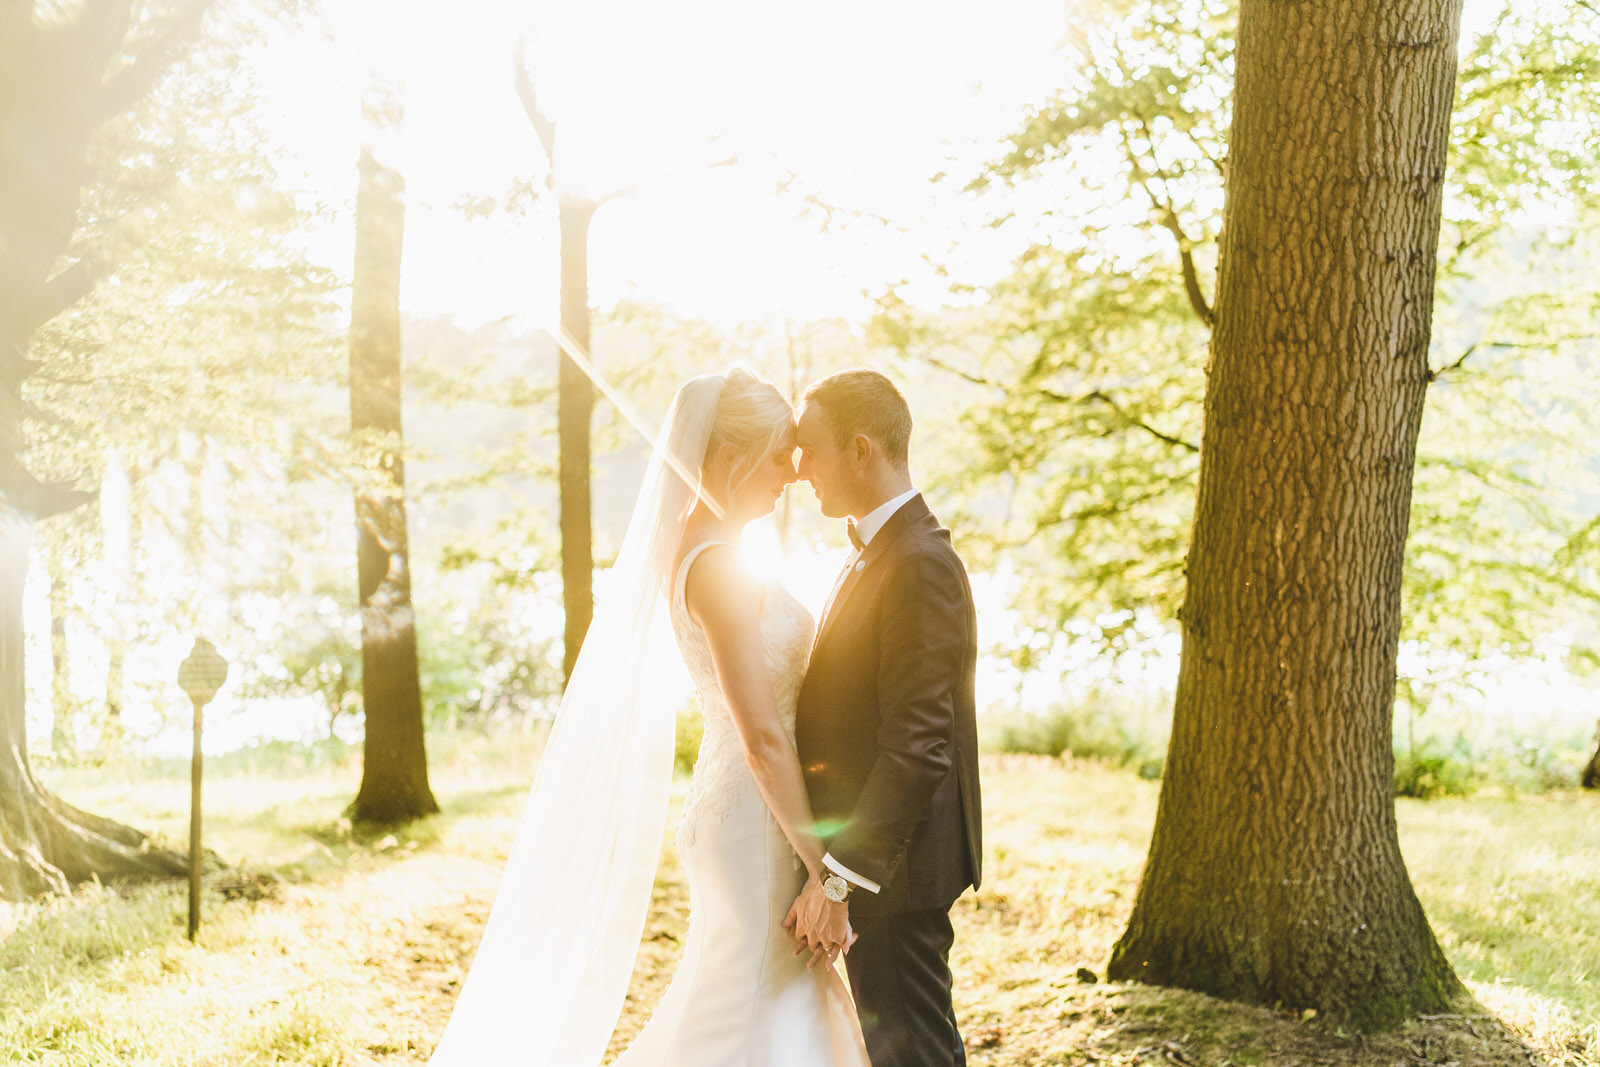 the sun shines at combermere as the bride and groom share an embrace